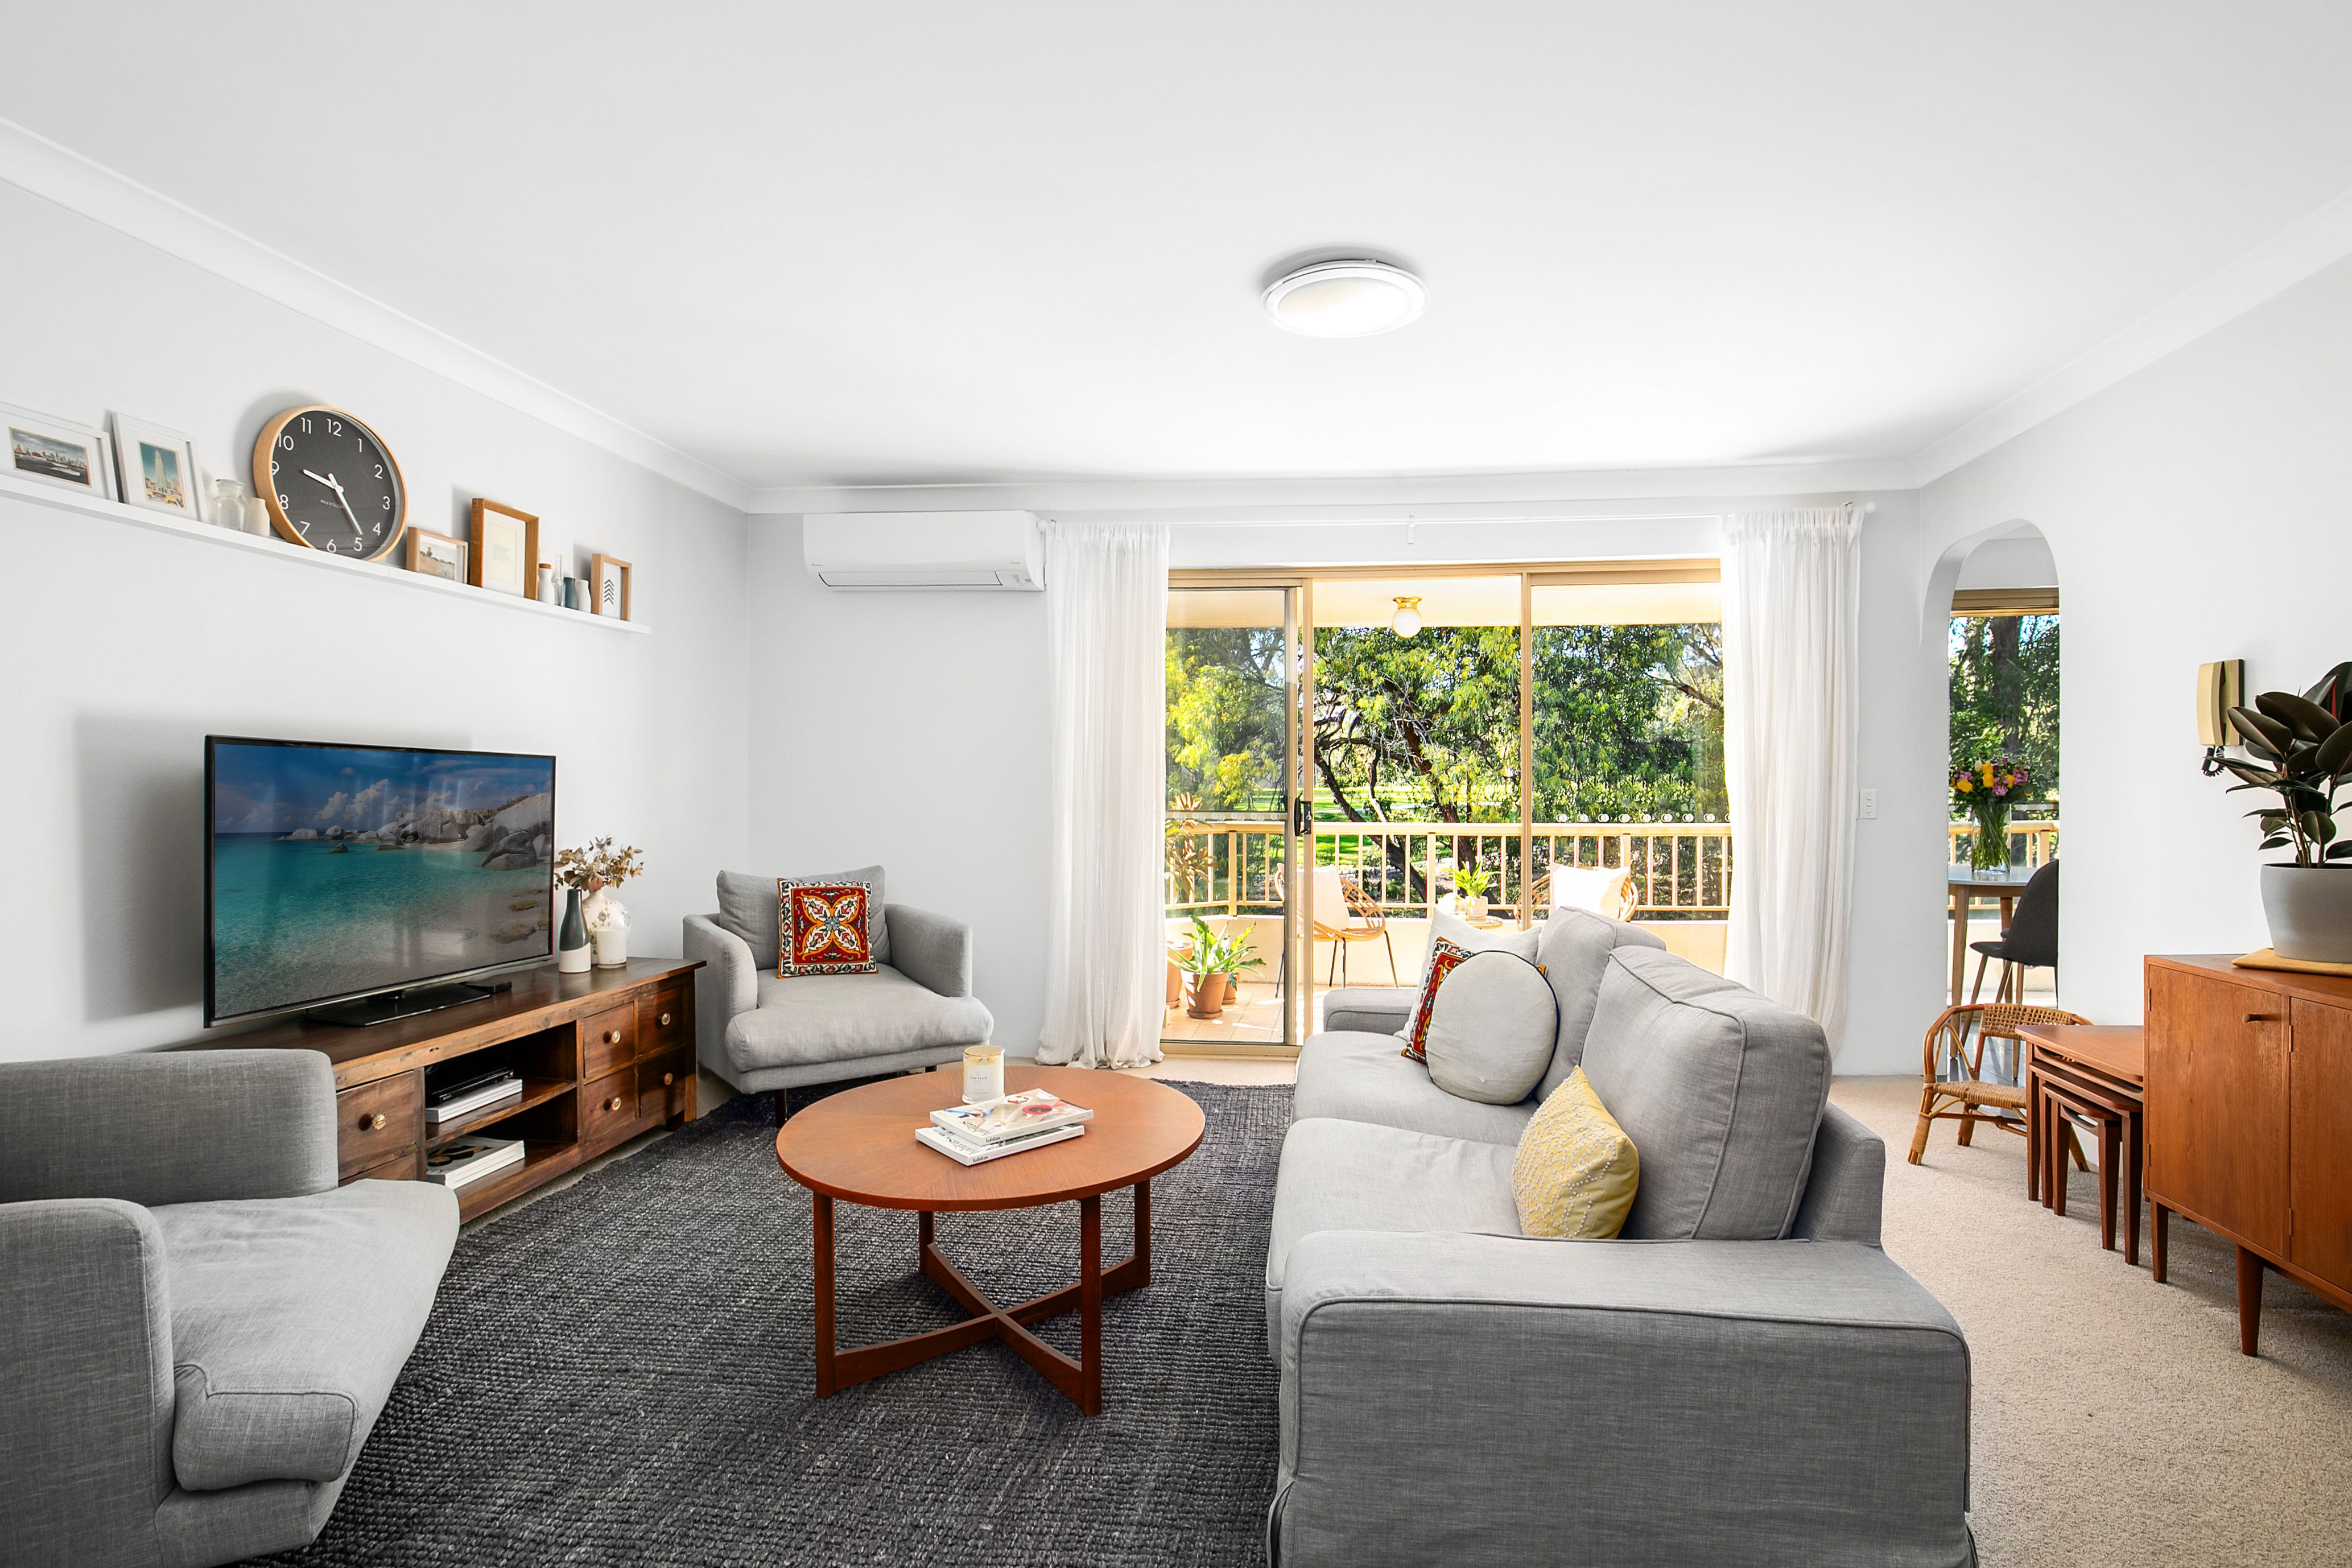 31/1-15 Tuckwell Place Macquarie Park 2113